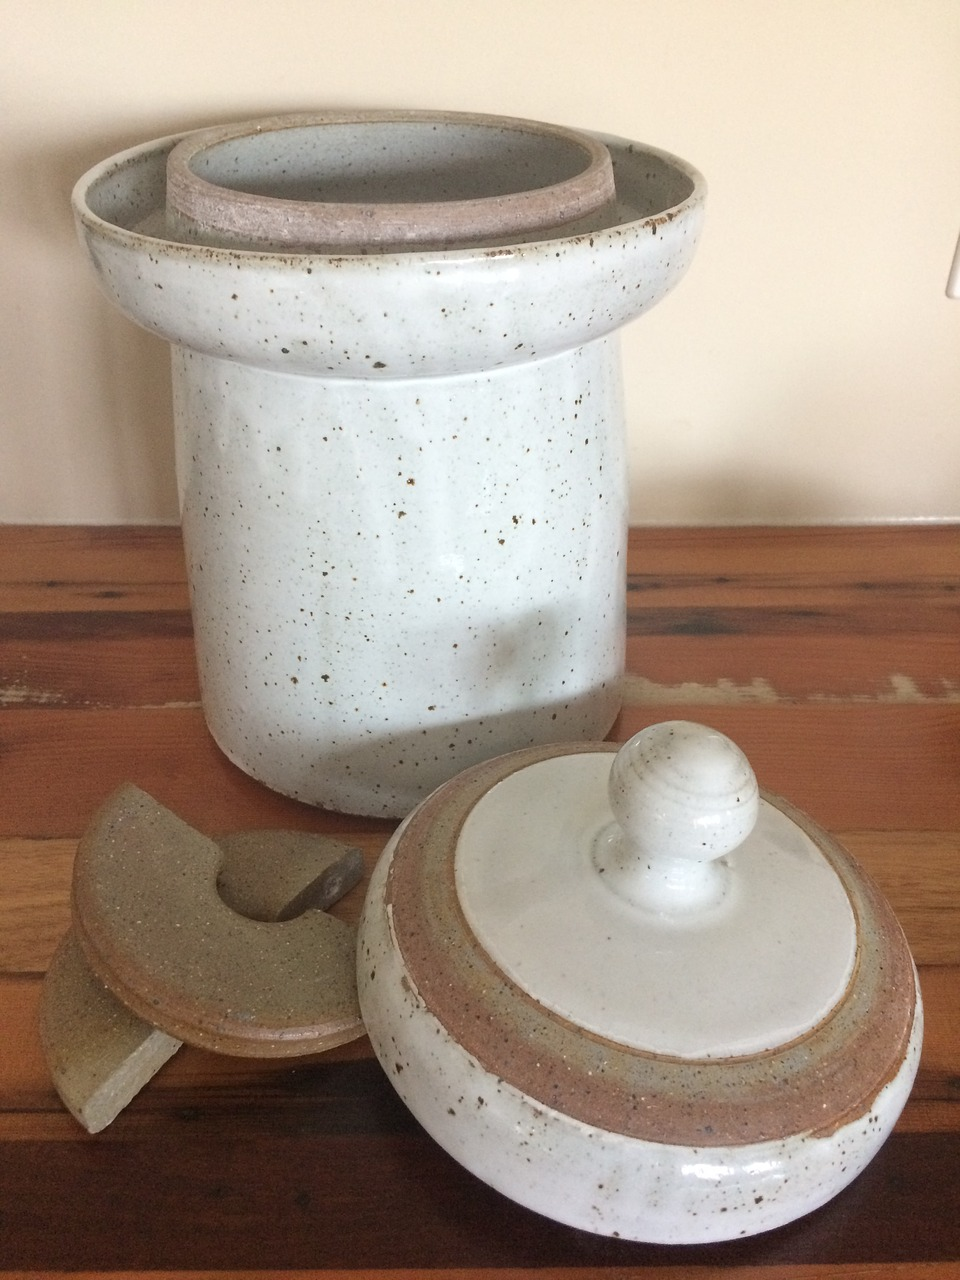 Stoneware Sauerkraut Crock with a Water Seal